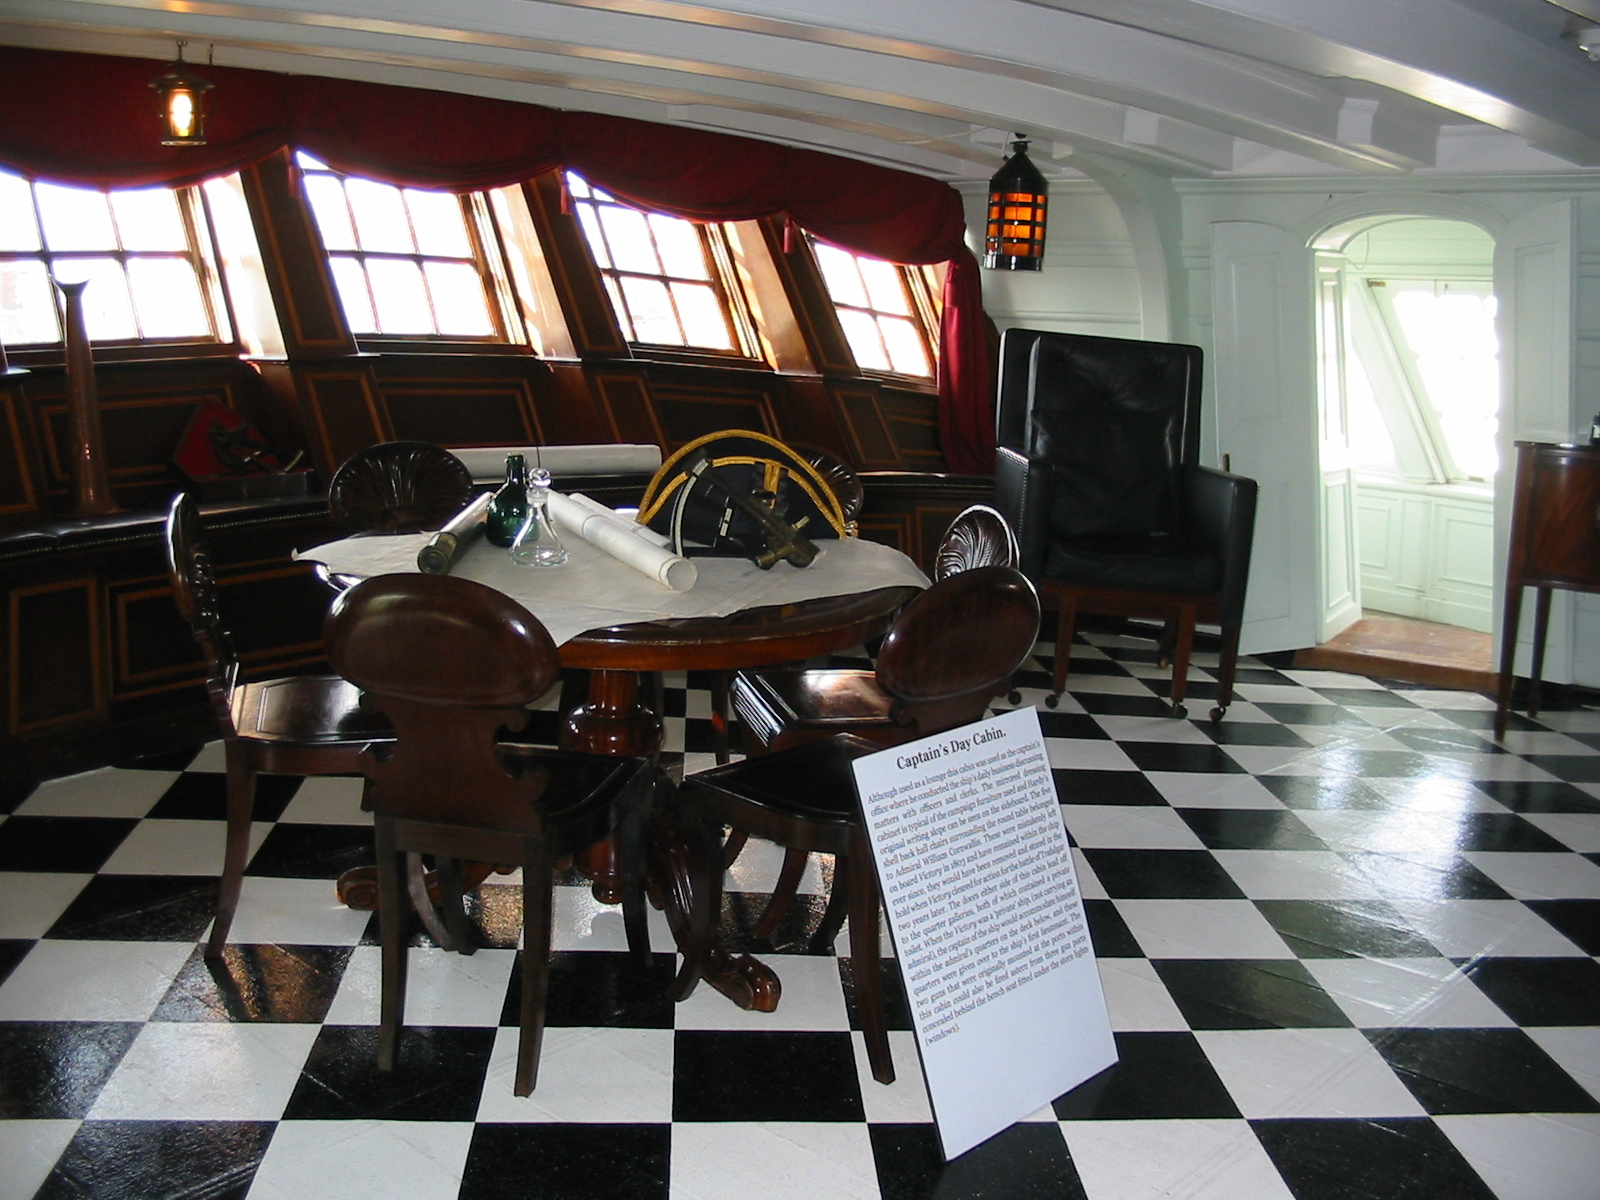 hms victory julian stockwin. Black Bedroom Furniture Sets. Home Design Ideas